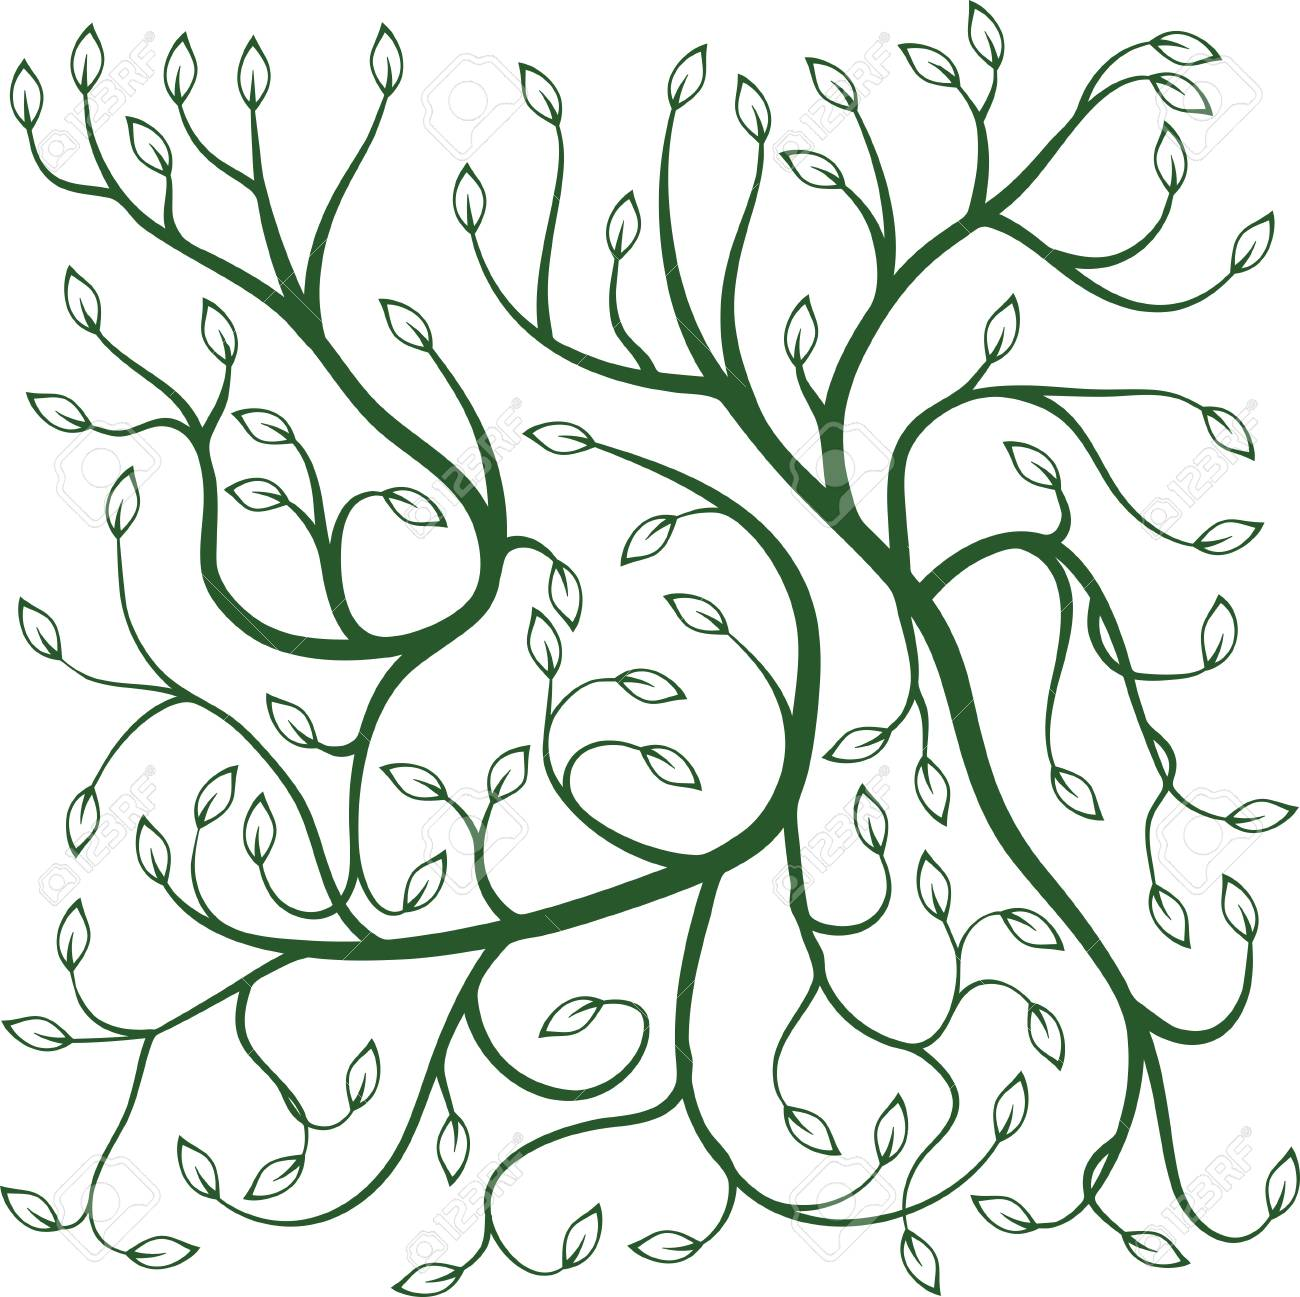 1300x1297 Illustration Of Green Curly Vines With Leaves Computer Graphics